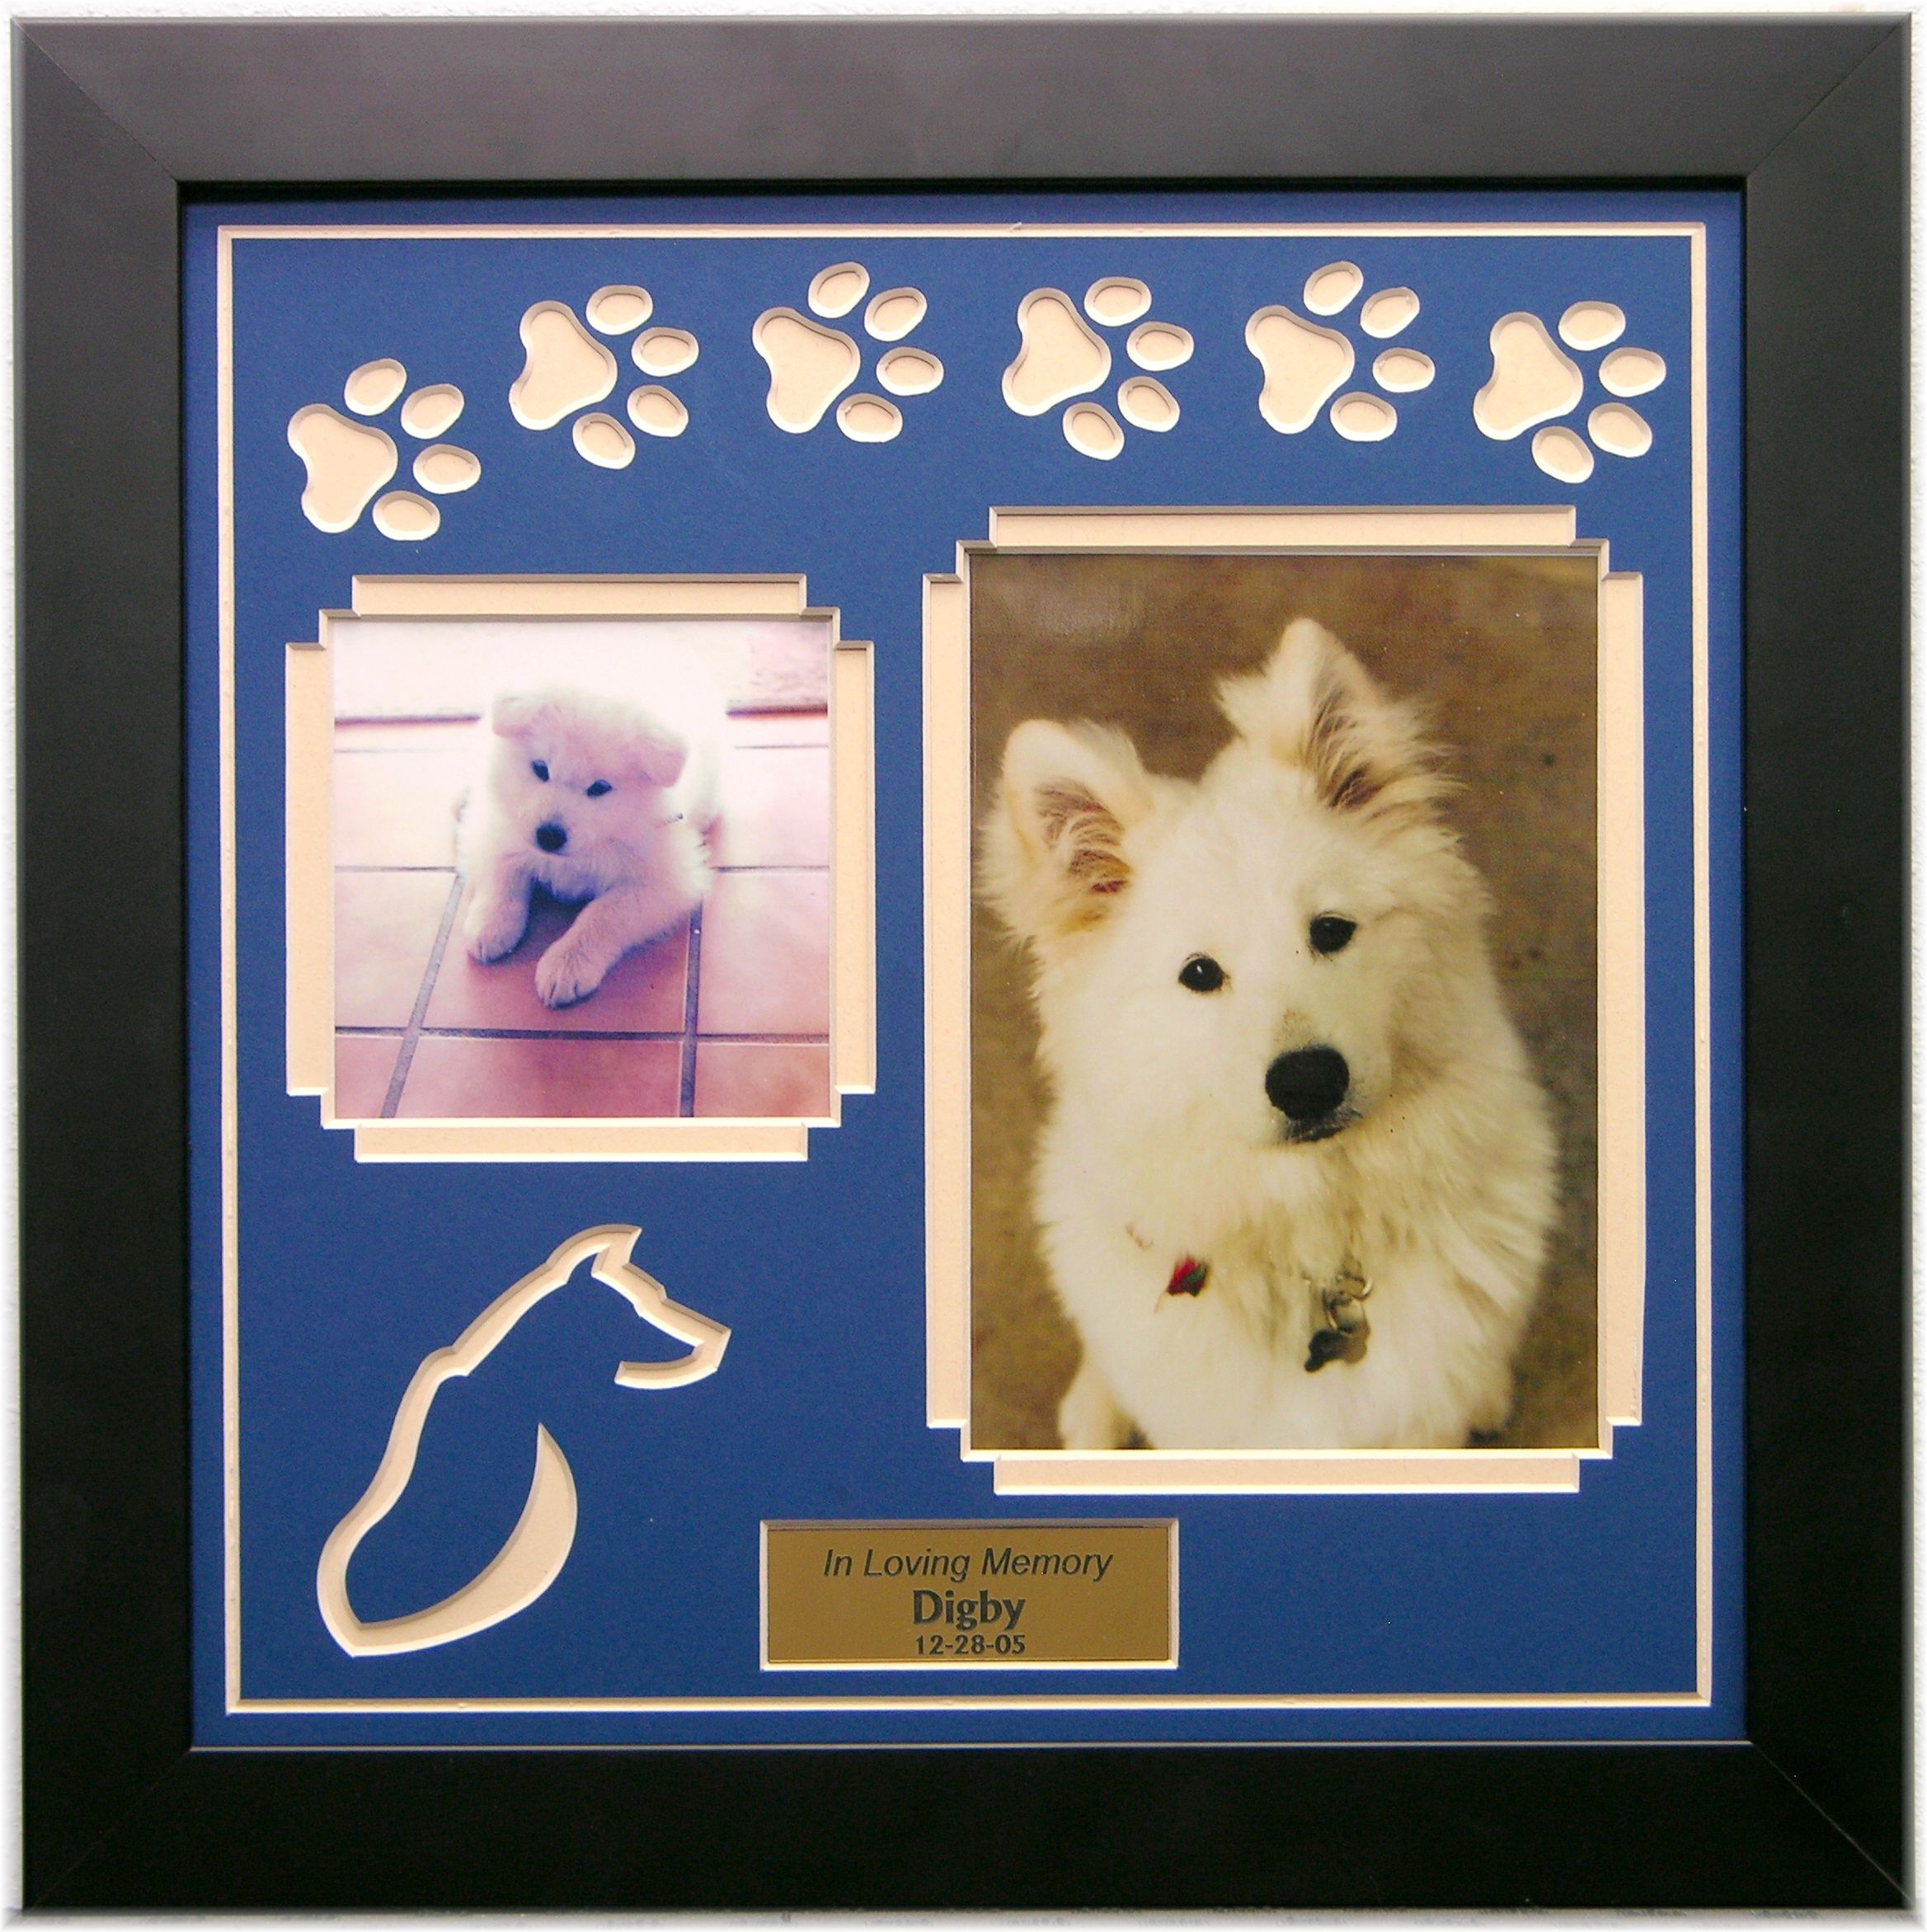 Pet Loss Memorial Products | Family dogs, Shadow box and Box